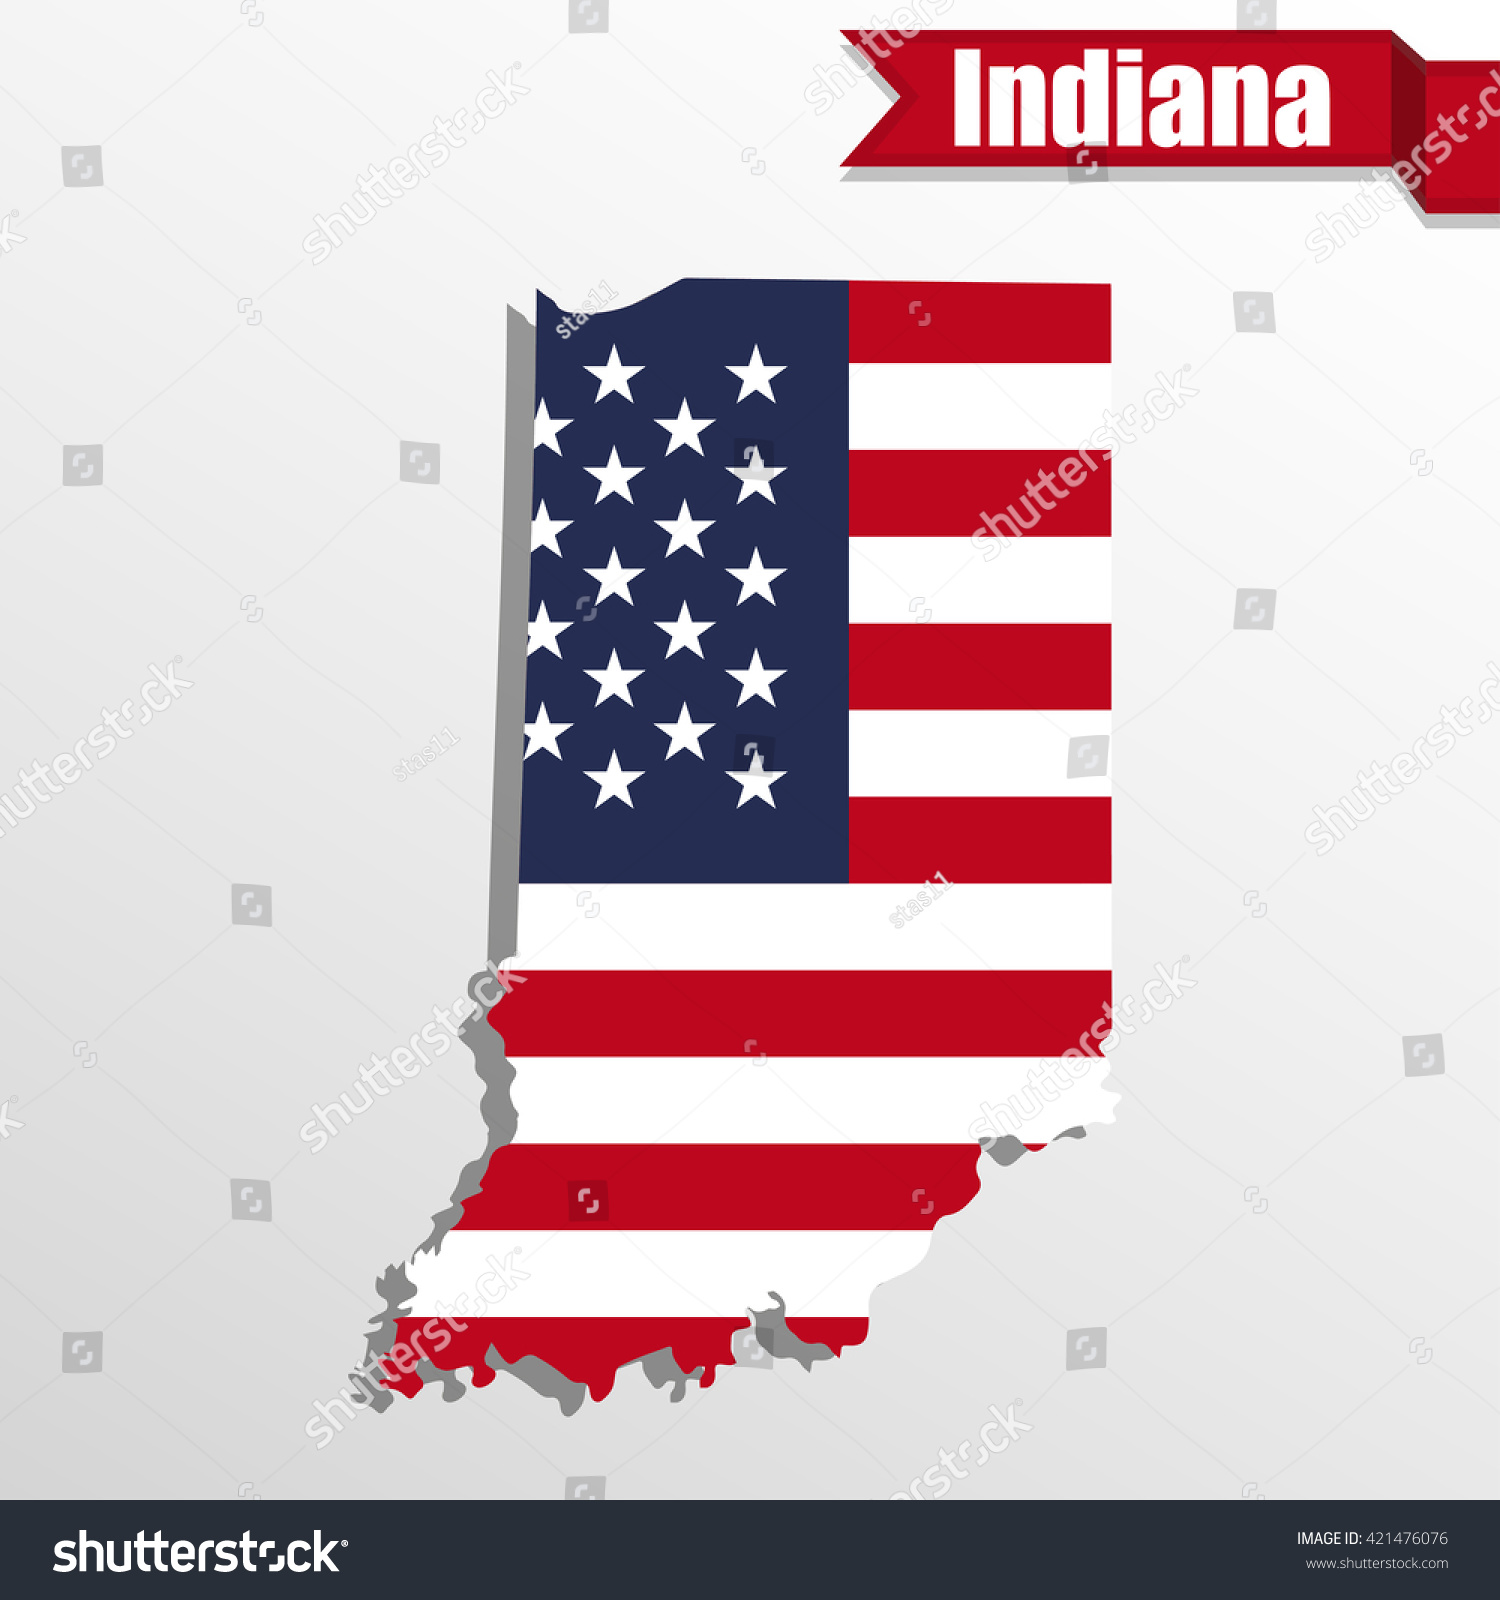 Indiana State Map Us Flag Inside Stock Vector Shutterstock - Indiana state on us map